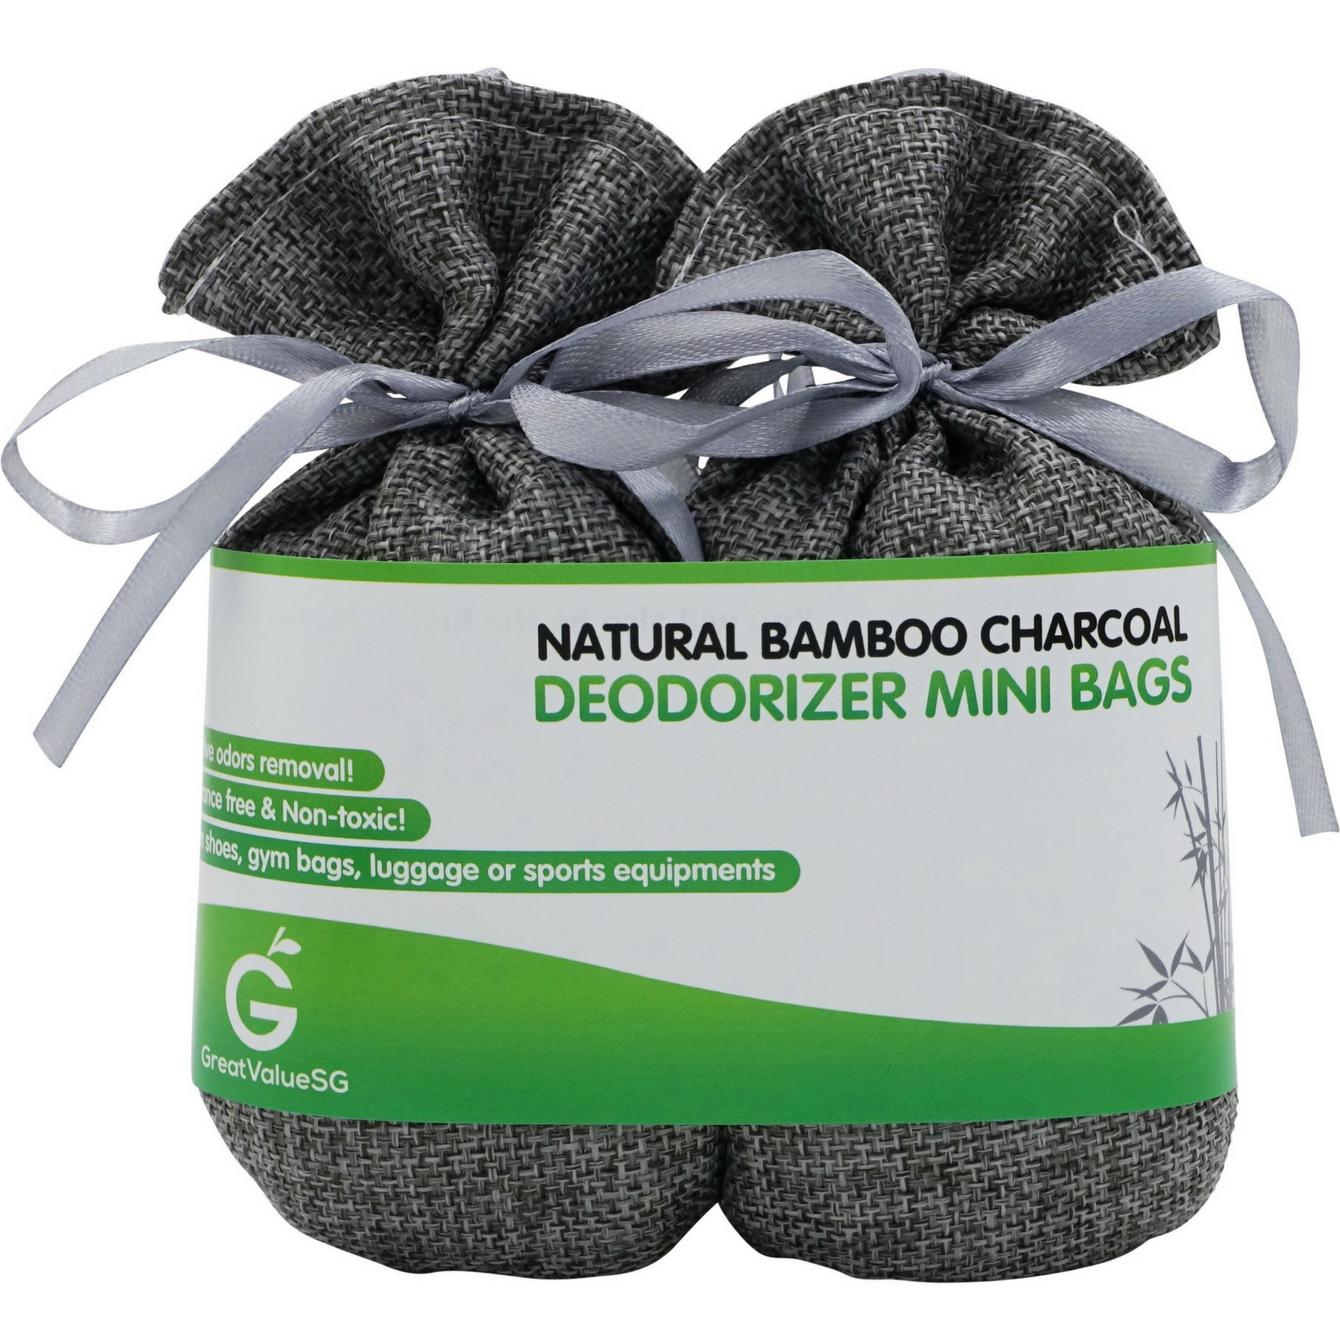 How Do I Get Great Value Sg Natural Bamboo Charcoal Deodorizer Mini Bags Best Odor Eliminator And Moisture Absorber Keep Air Dry And Fresh Portable Perfect For Shoe Gym Bag Drawer And Locker